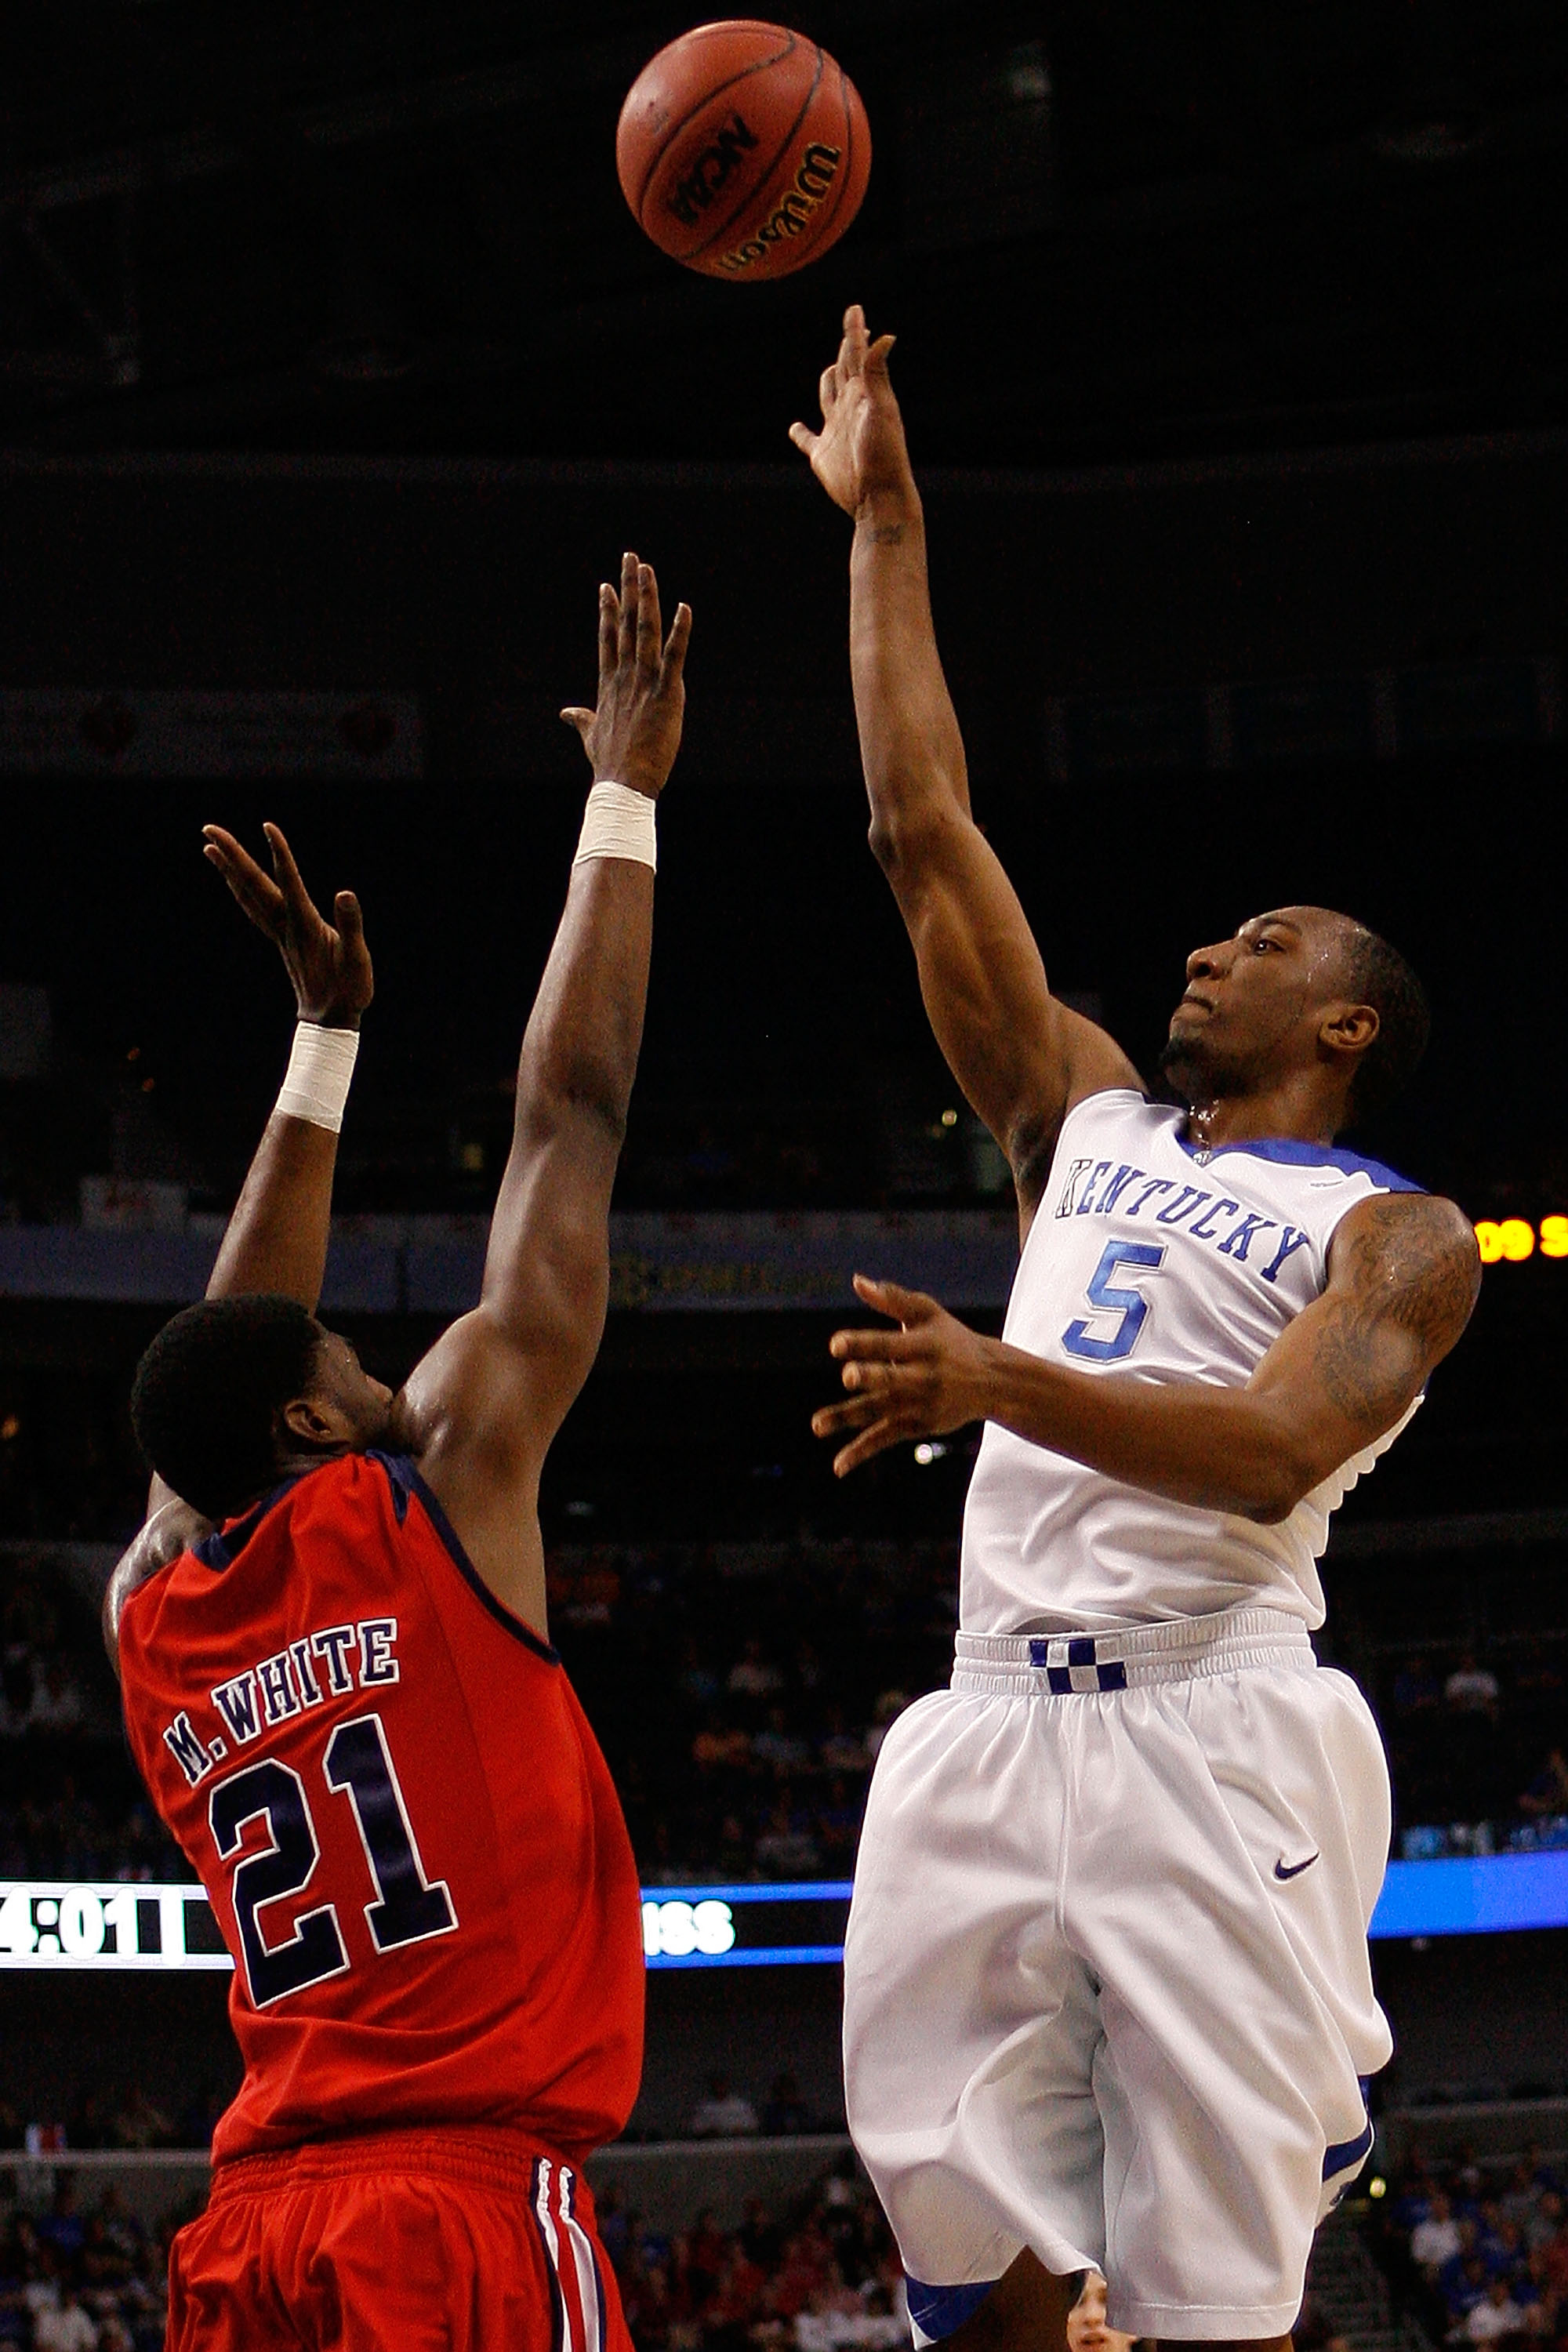 TAMPA, FL - MARCH 12:  Ramon Harris #5 of the Kentucky Wildcats makes a shot over Malcom White #21 of The Ole Miss Rebels during the first round of the SEC Men's Basketball Tournament on March 12, 2009 at The St. Pete Times Forum in Tampa, Florida.  (Phot